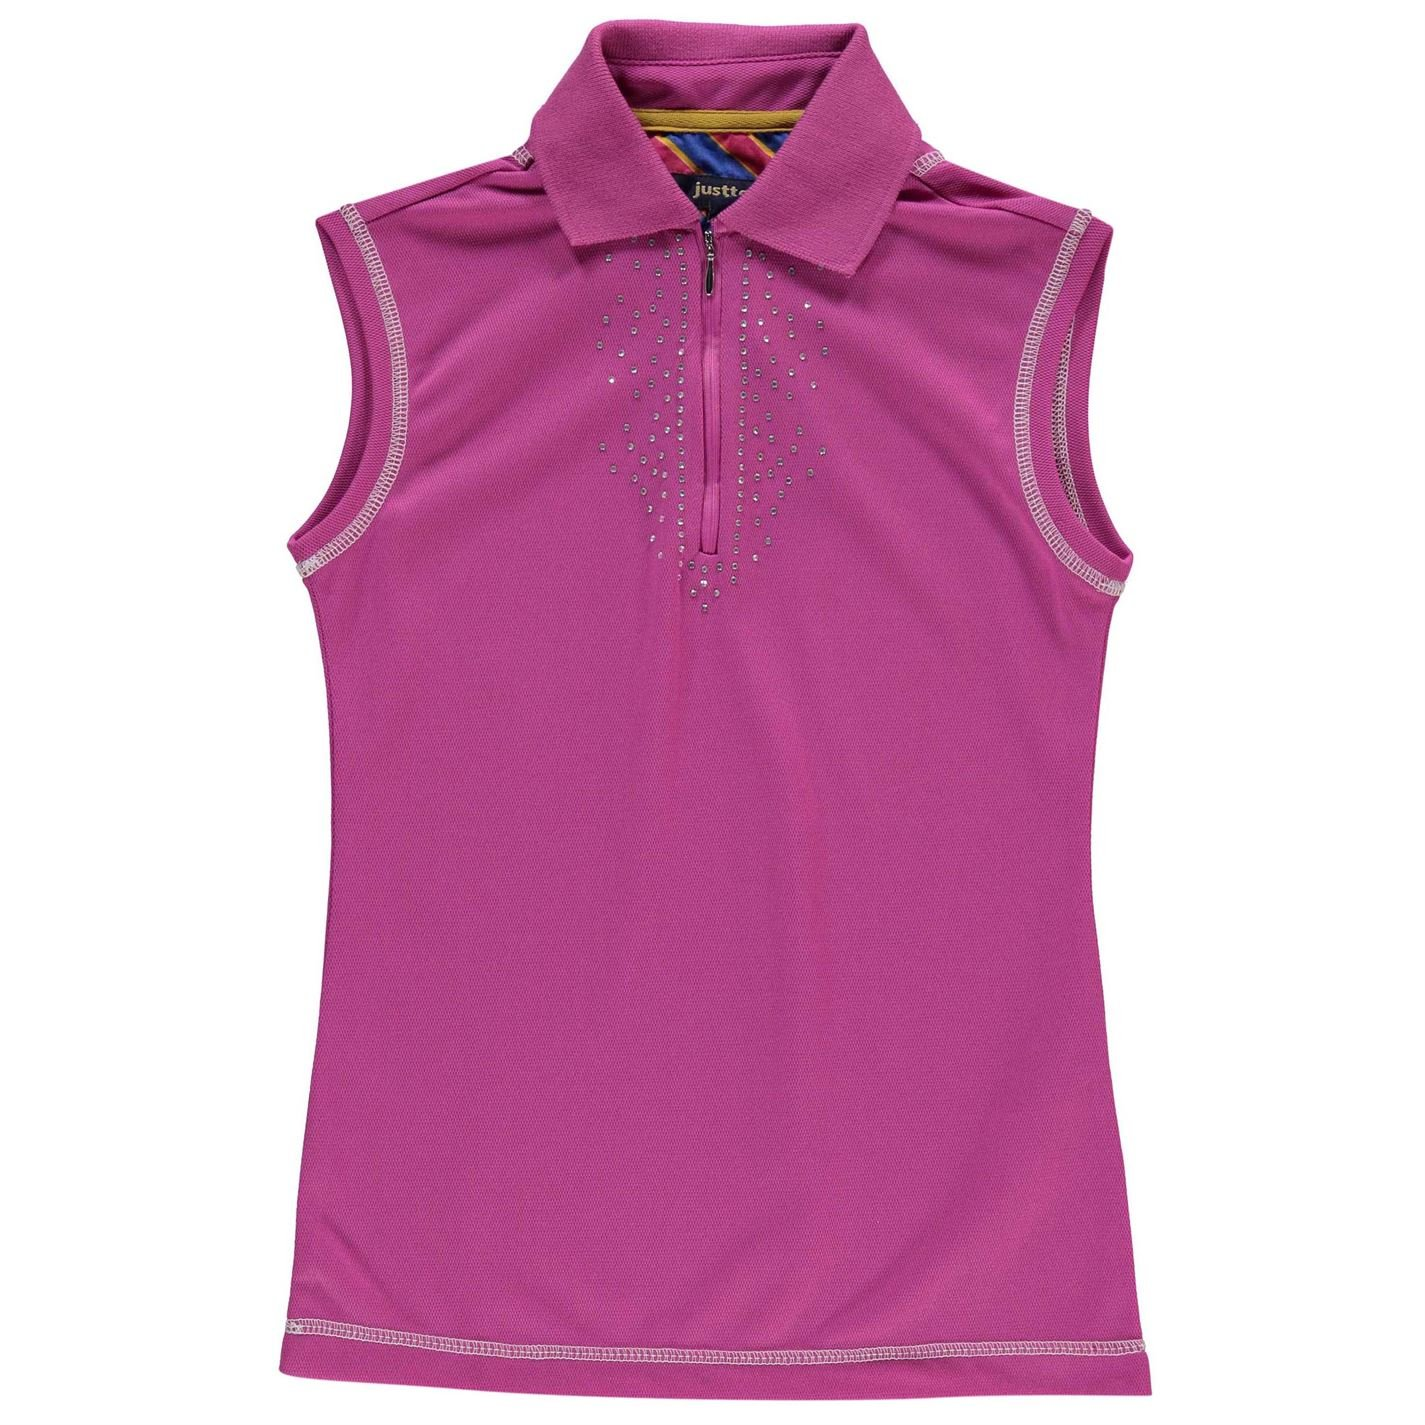 Just Togs Niños Jessica Polo Camisa Sin Mangas Casual Rosa 9-10(SG ...